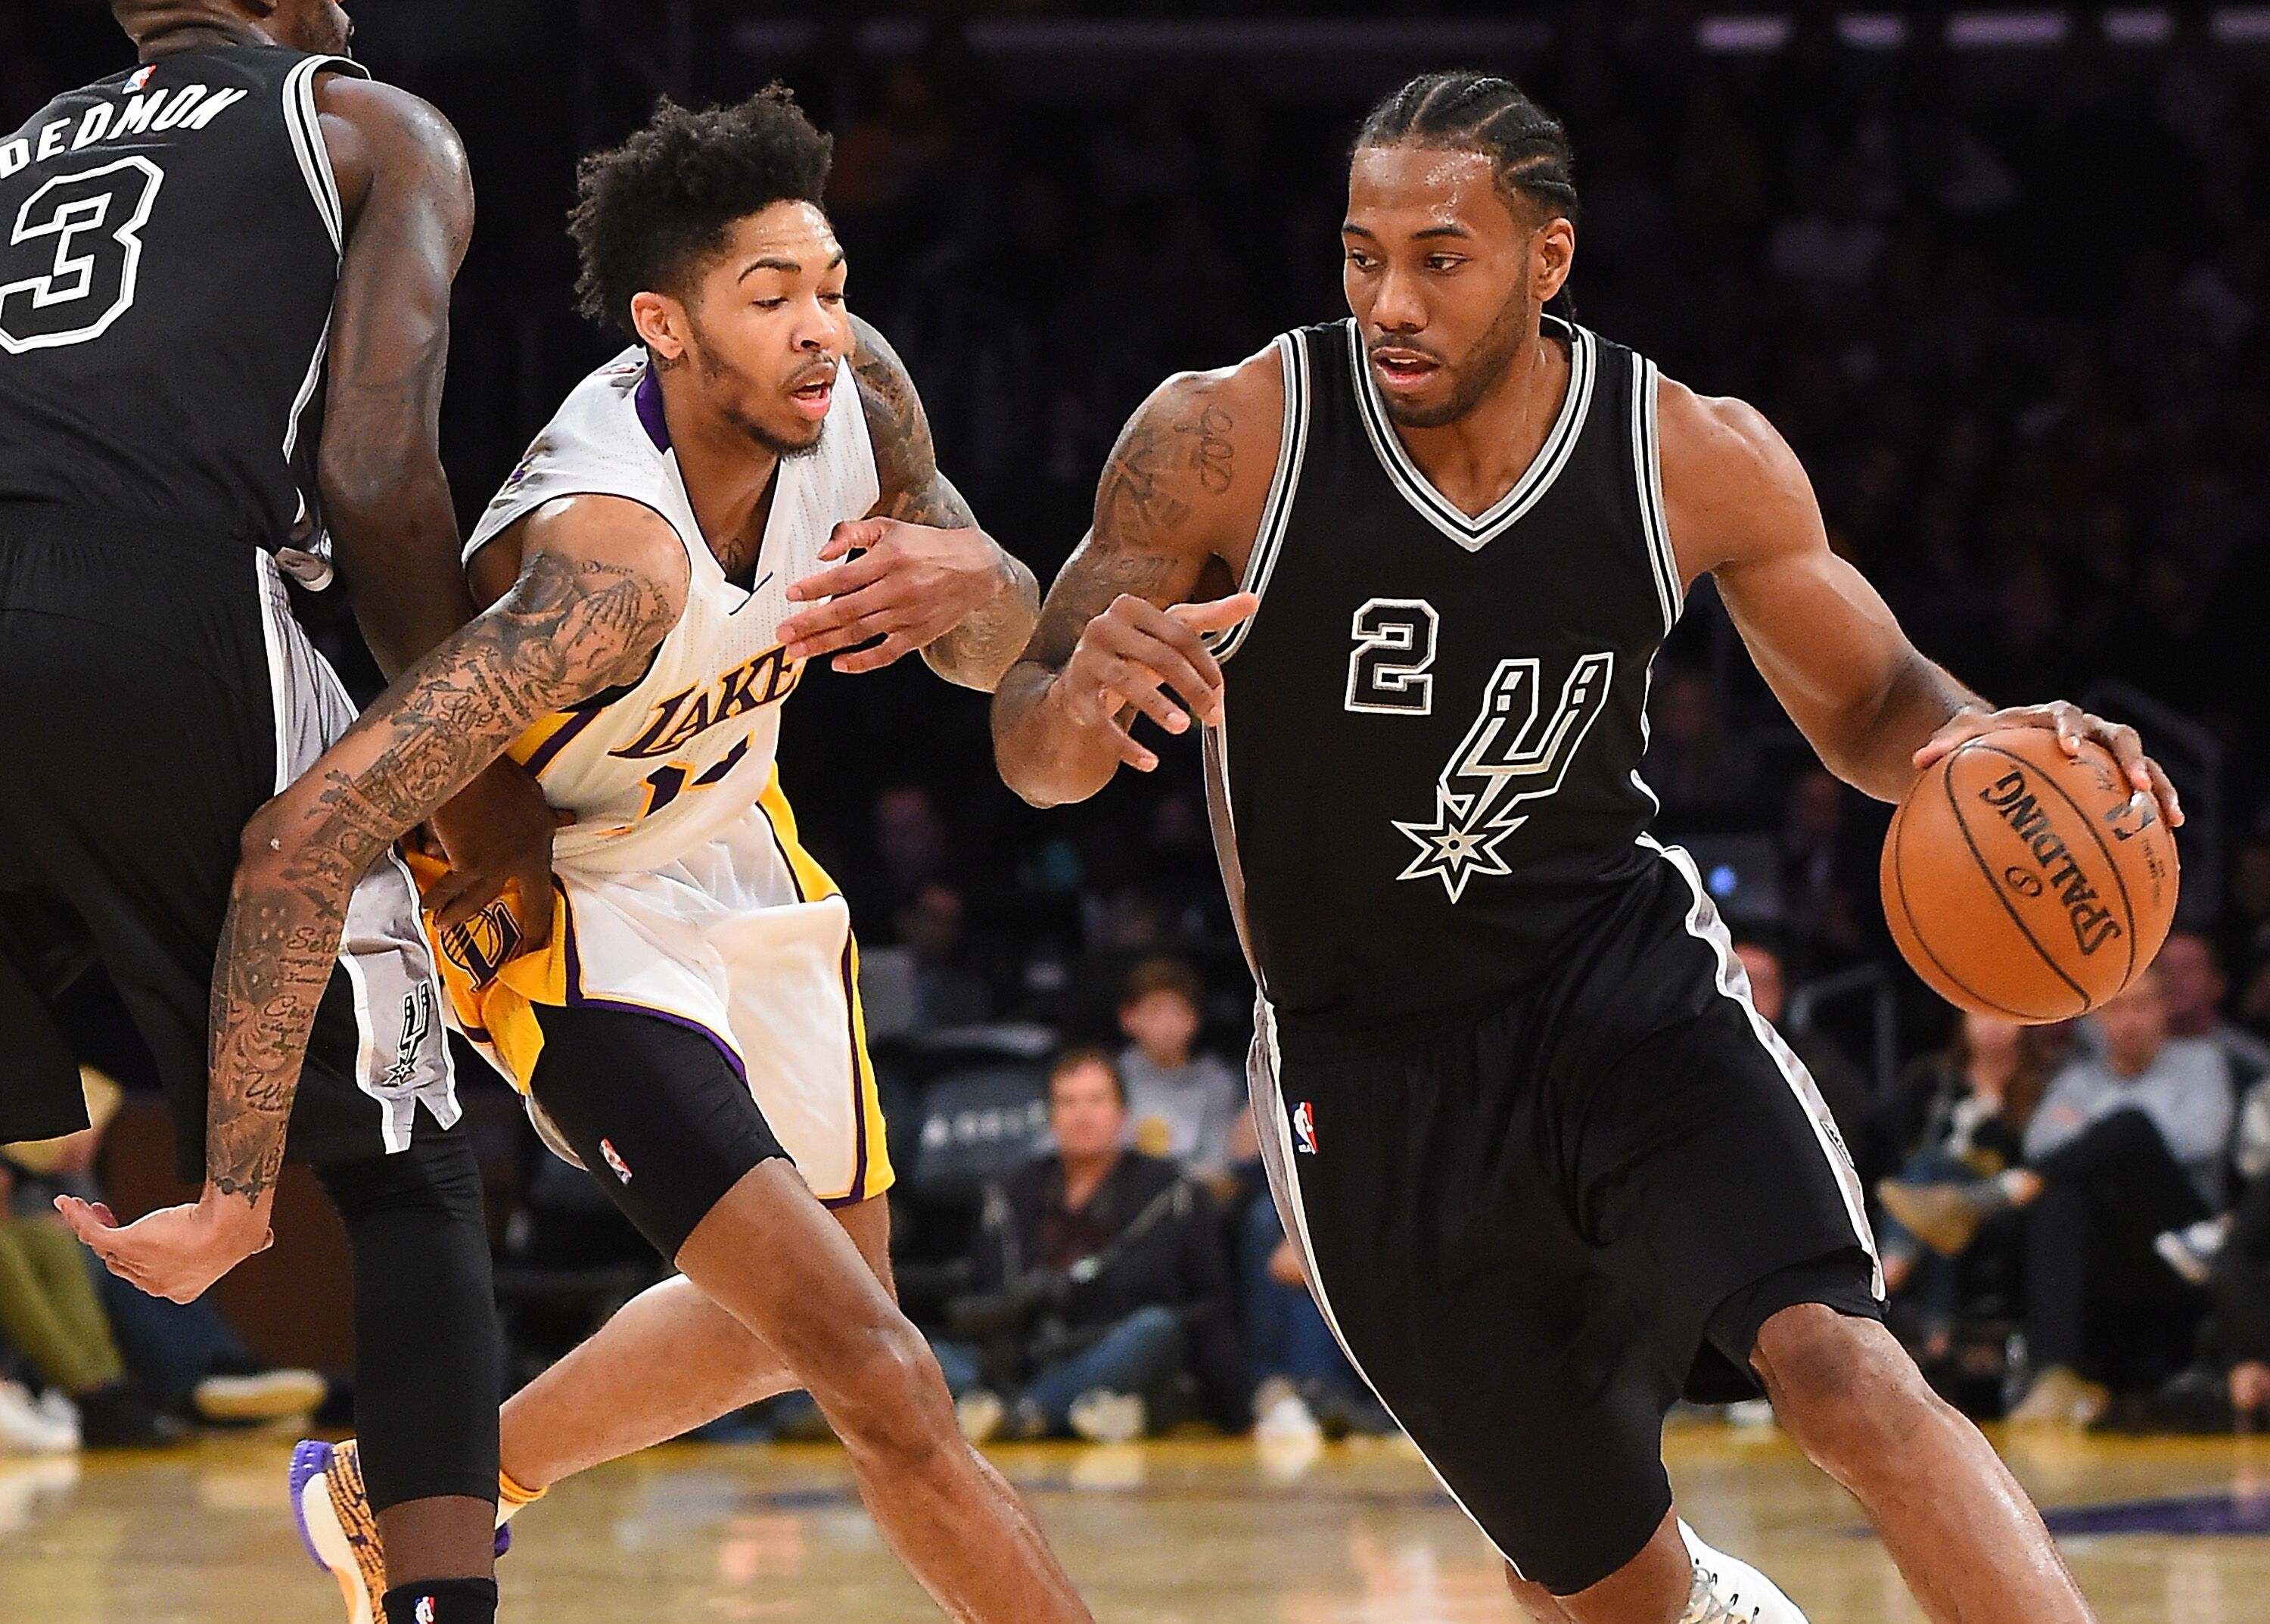 645626792-san-antonio-spurs-v-los-angeles-lakers.jpg